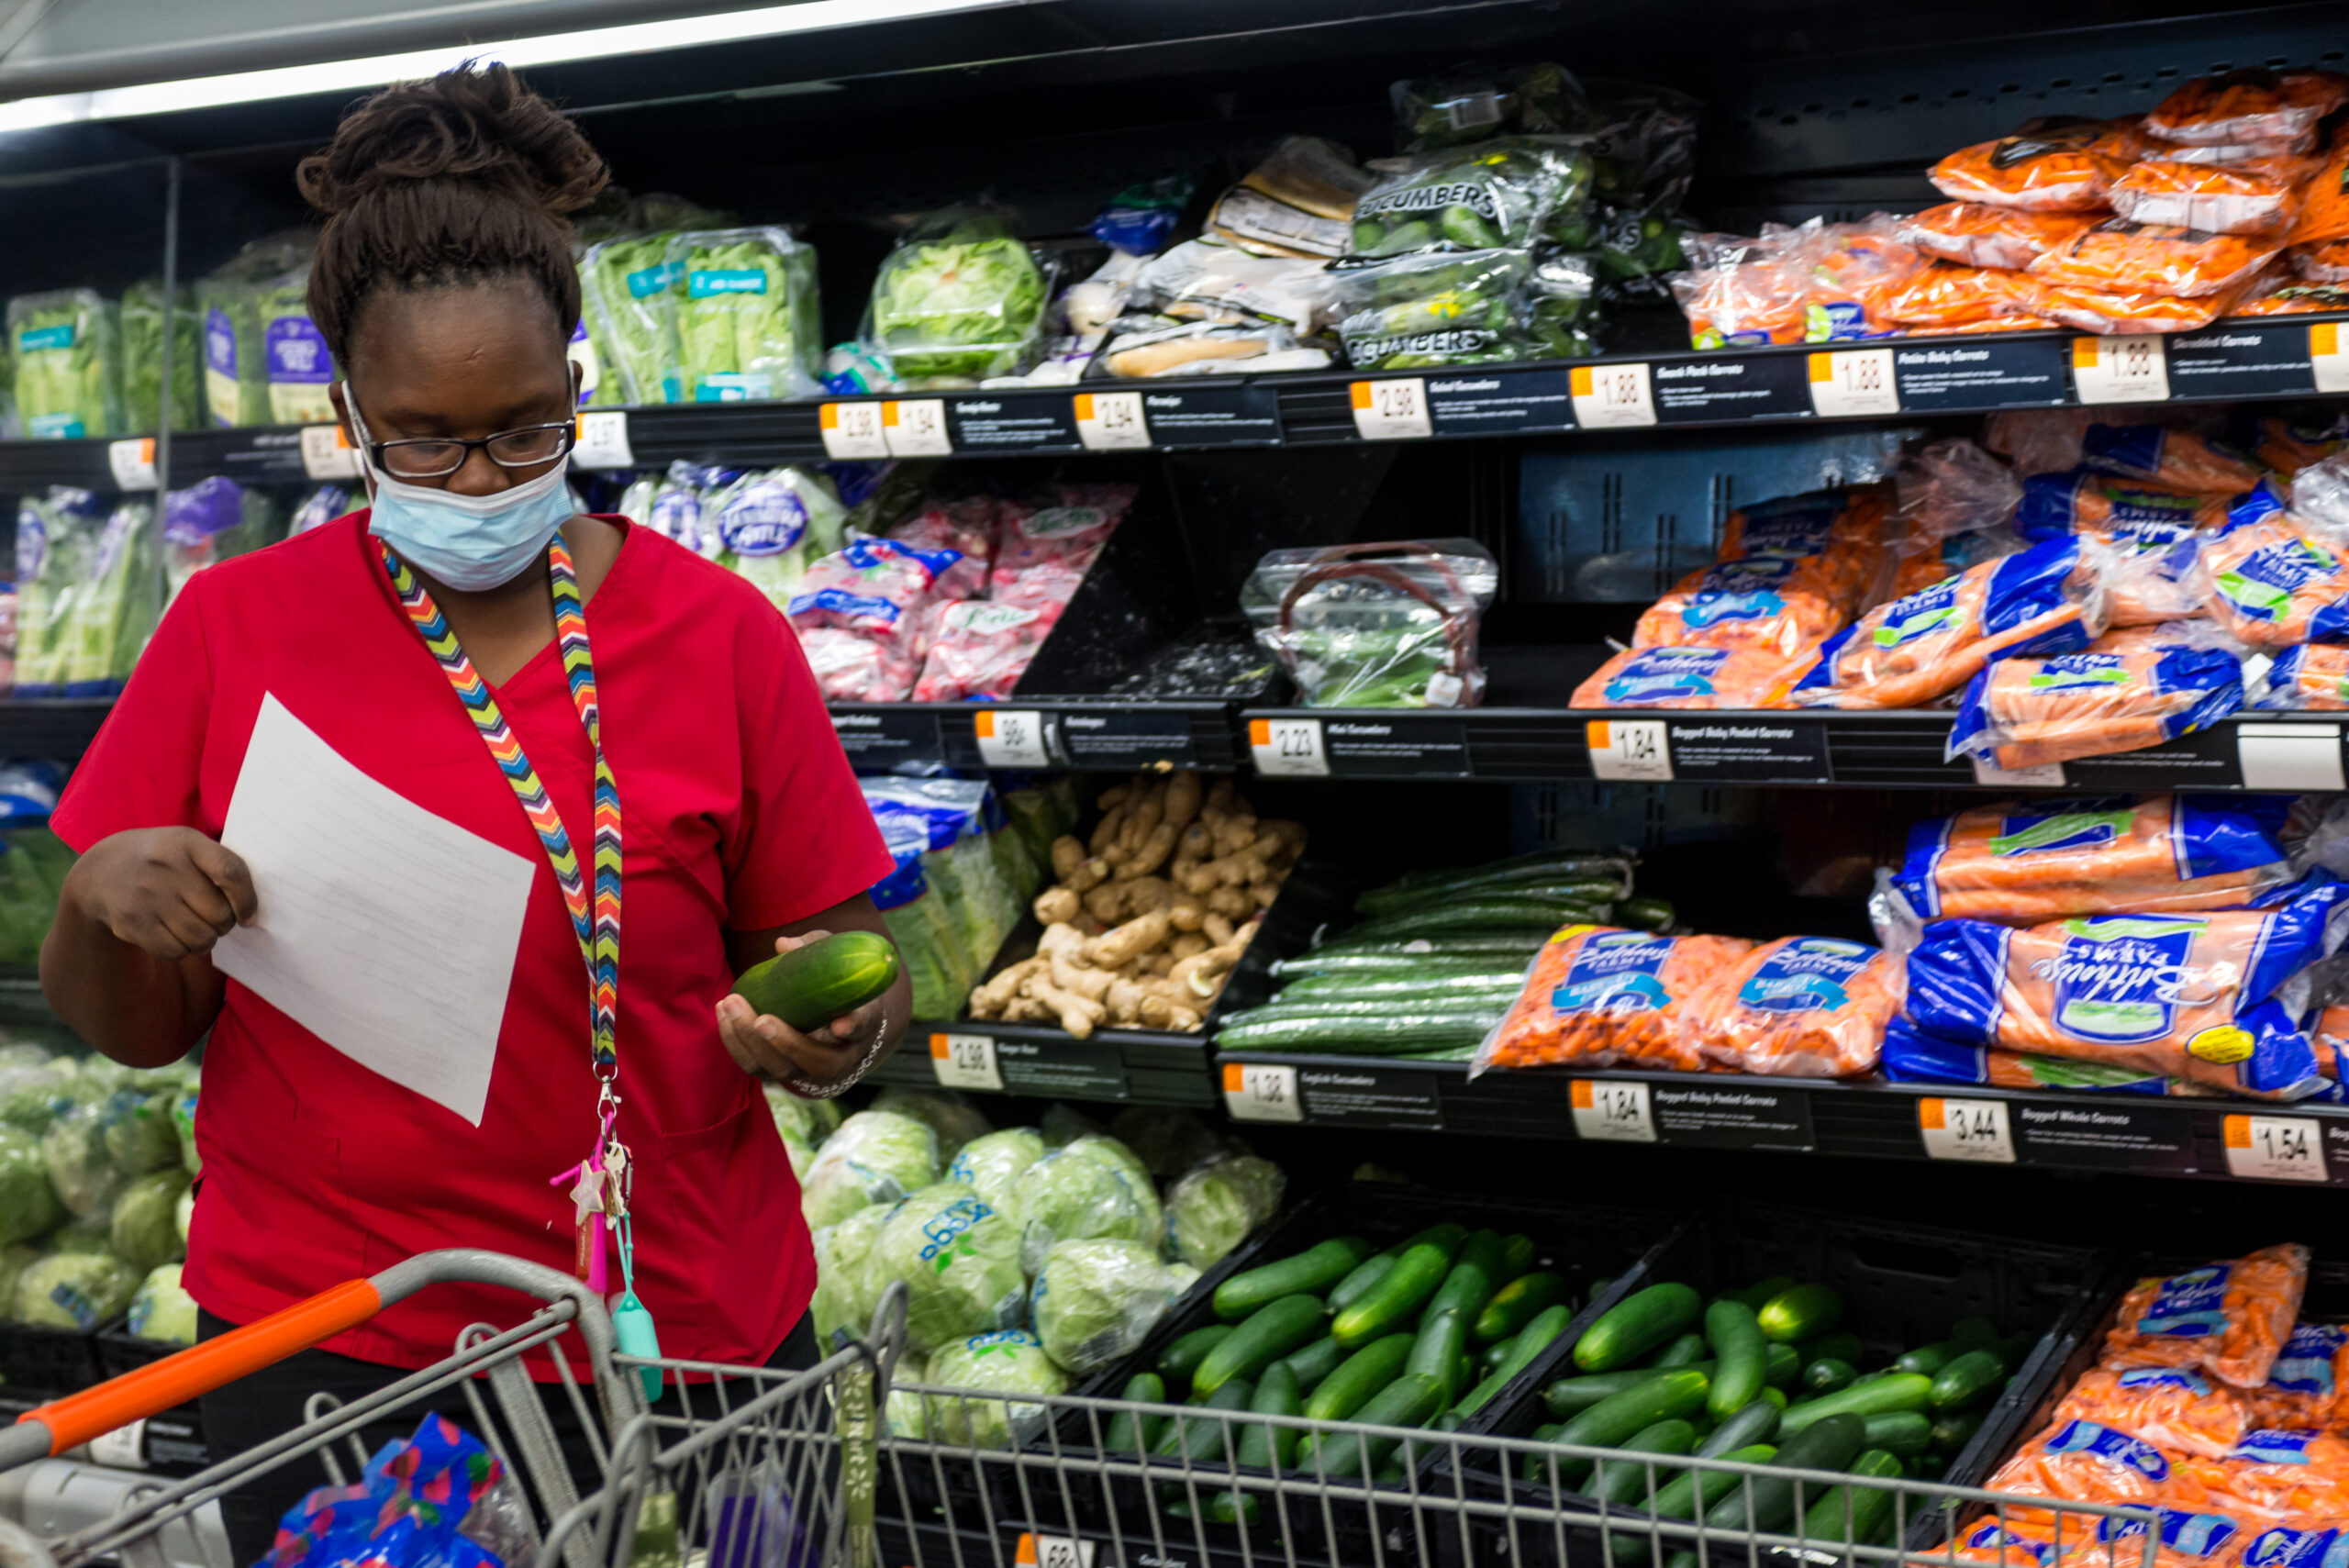 A Healthier You Meridian participant, Debra Thames, participates in a monthly shopping trip in which participants get a stipend and help with picking out healthy and cost effective groceries.  Meridian, MS Tues, Nov. 24, 2020 (Photo By Revere Photography for Direct Relief)